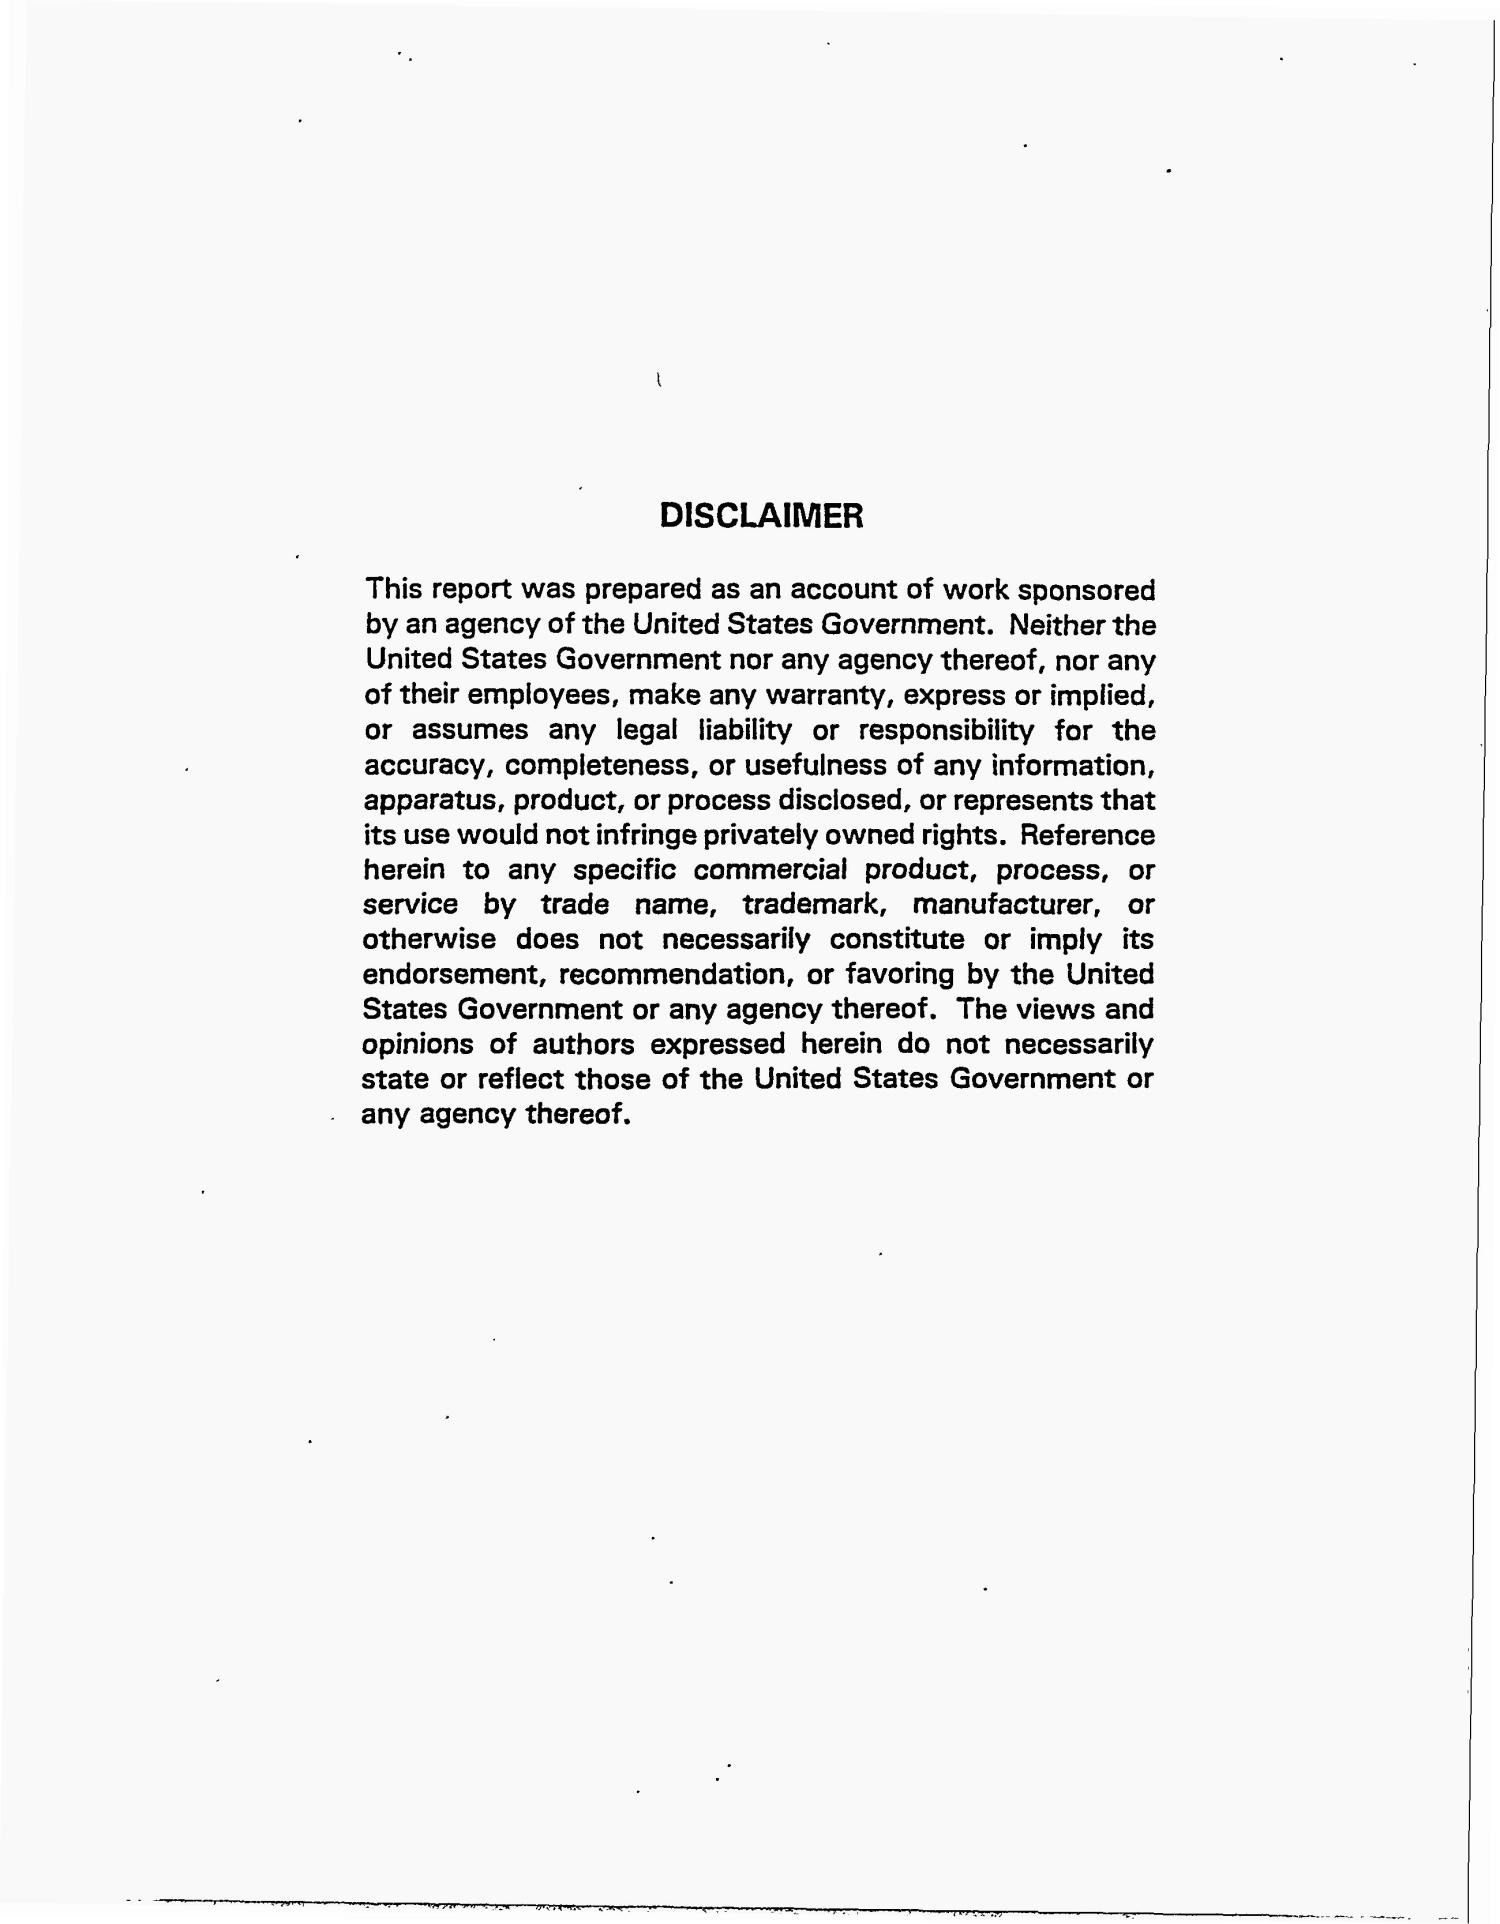 Advanced liquefaction using coal swelling and catalyst dispersion techniques. Volume 1, Final technical report, October 1, 1991--September 30, 1994                                                                                                      [Sequence #]: 2 of 365